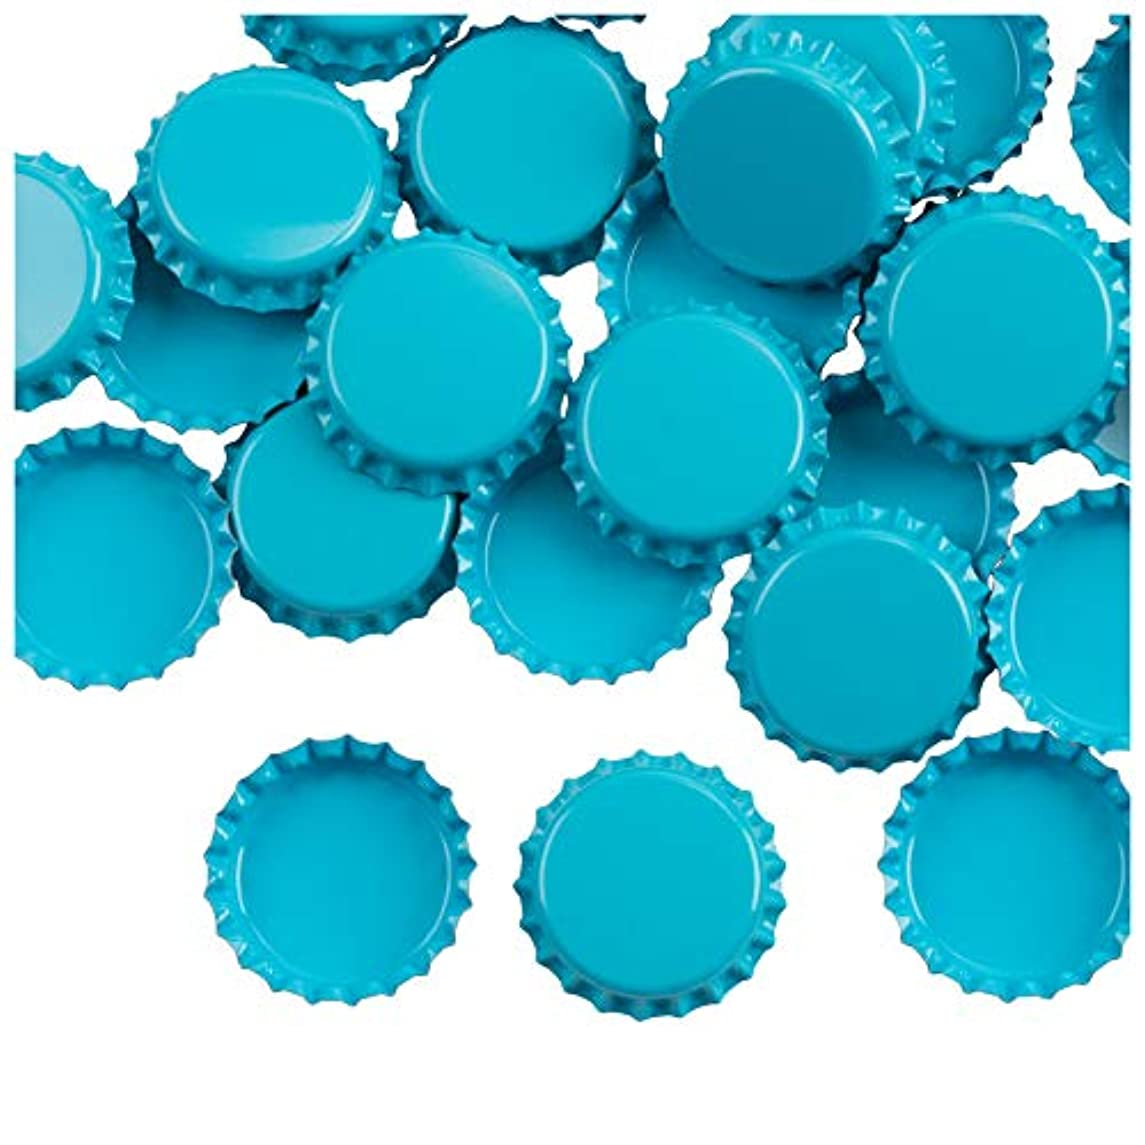 Bottle Caps- 120-Pack Craft Crown Bottle Caps, Decorative Bottle Caps, Perfect for Jewelry Making, Hairbows, Pendants DIY, Scrapbooking, Blue, 1 Inch Diameter